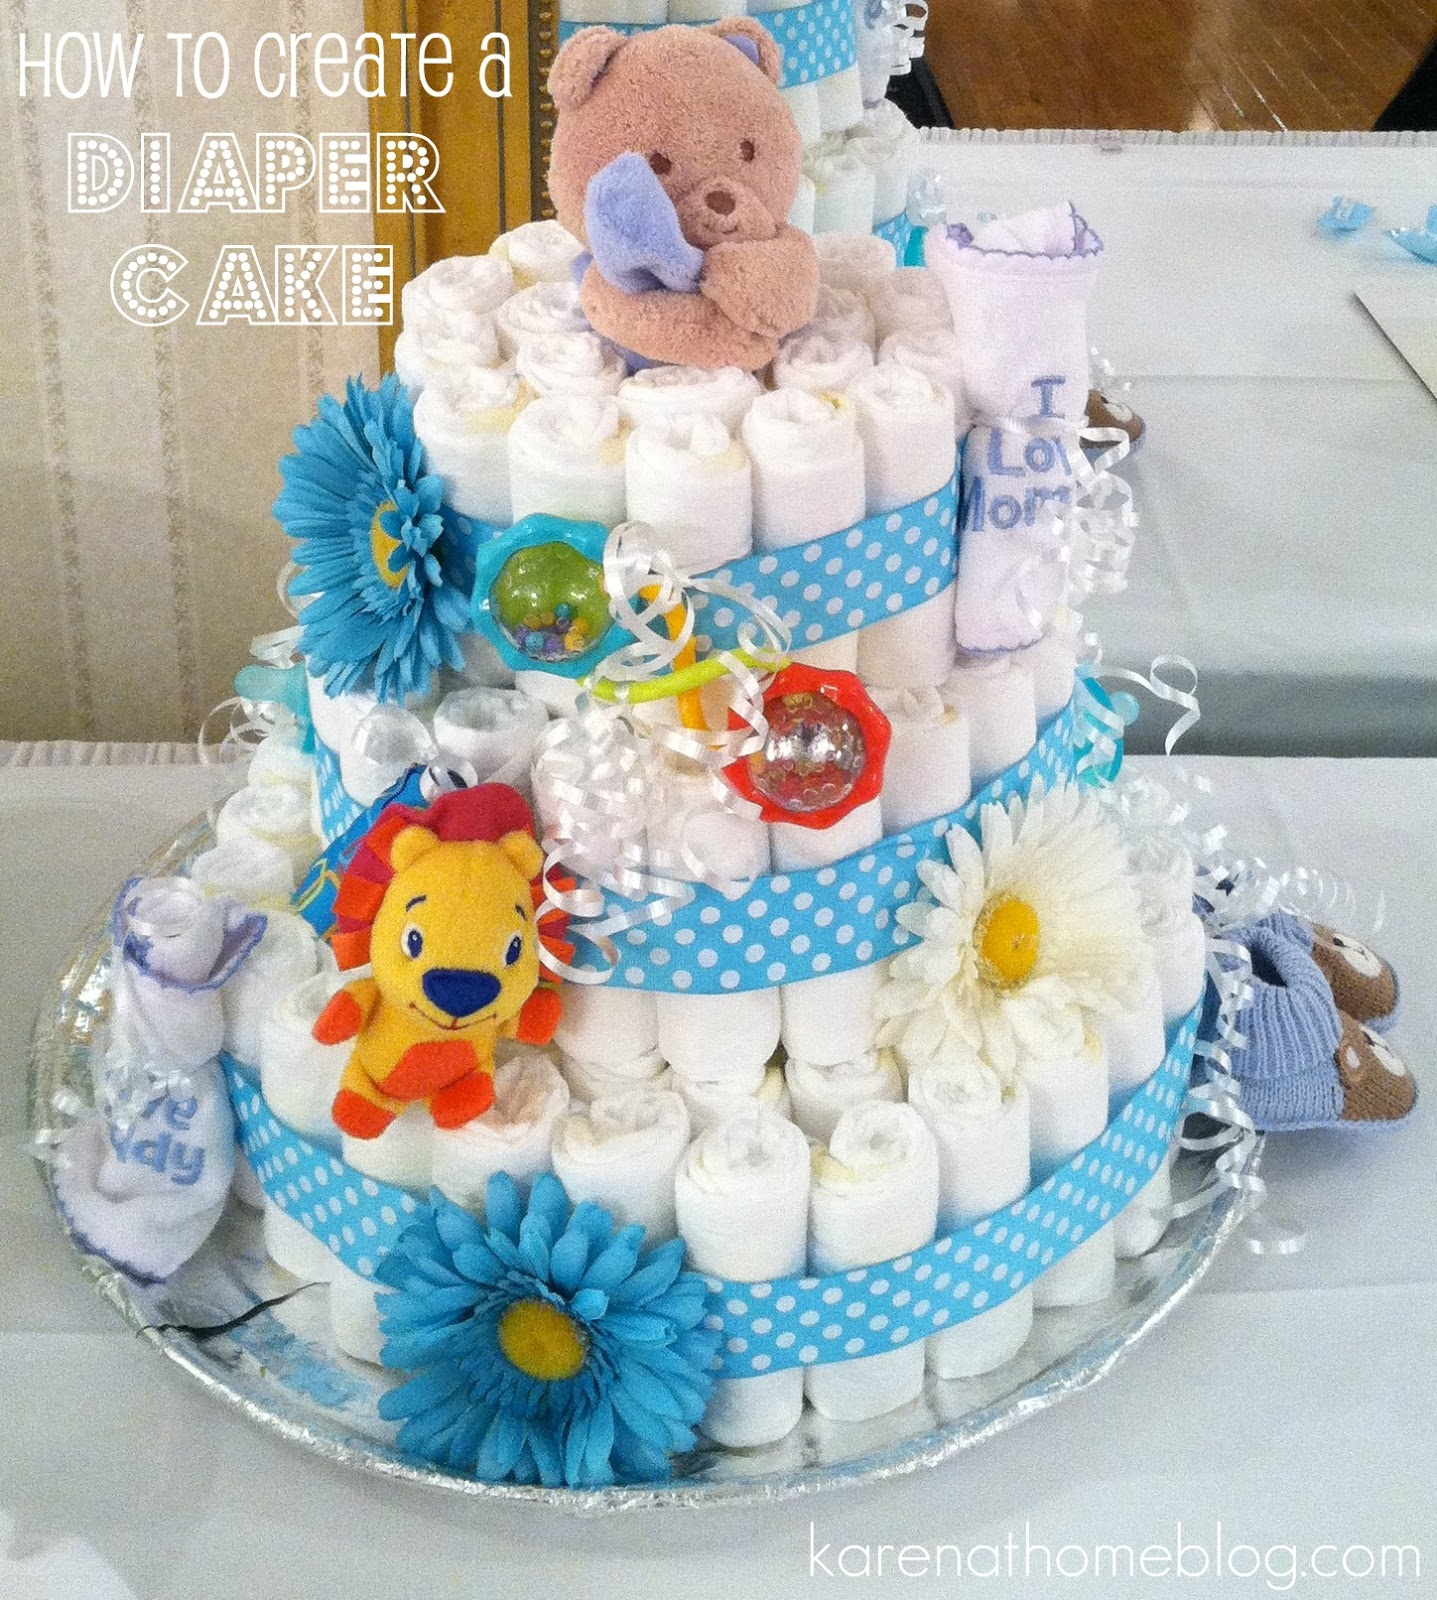 Karen at home how to make a diaper cake hello all i hope you had a nice weekend it was a busy one here for one for us yet we are no where closer to getting the babys room done publicscrutiny Image collections